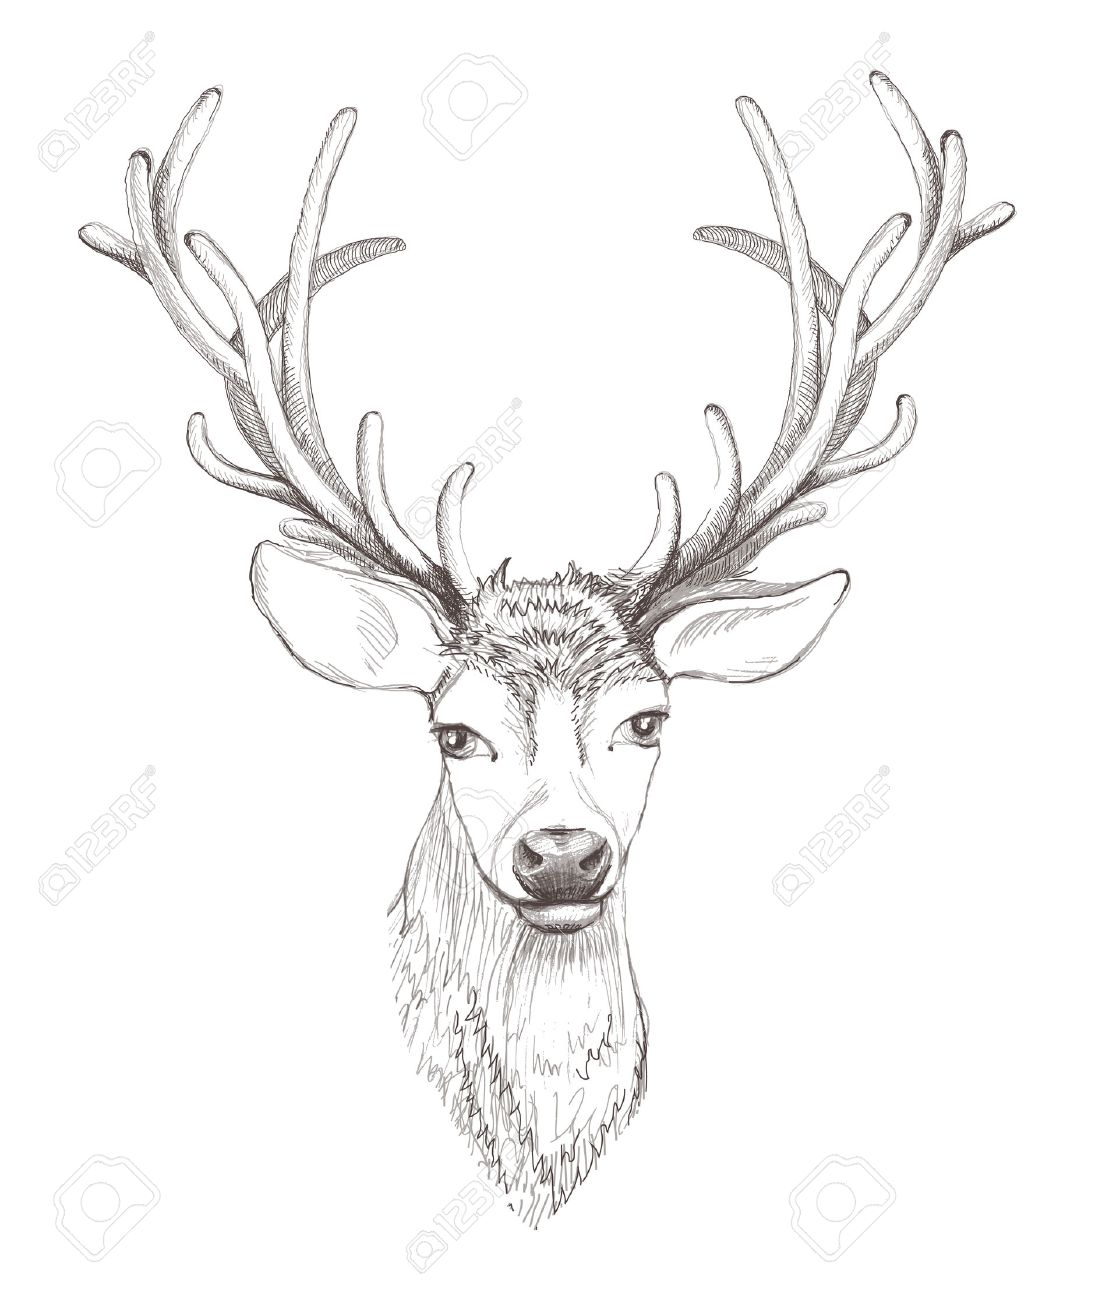 Deer head isolated beautiful sketch illustration stock vector 25117807